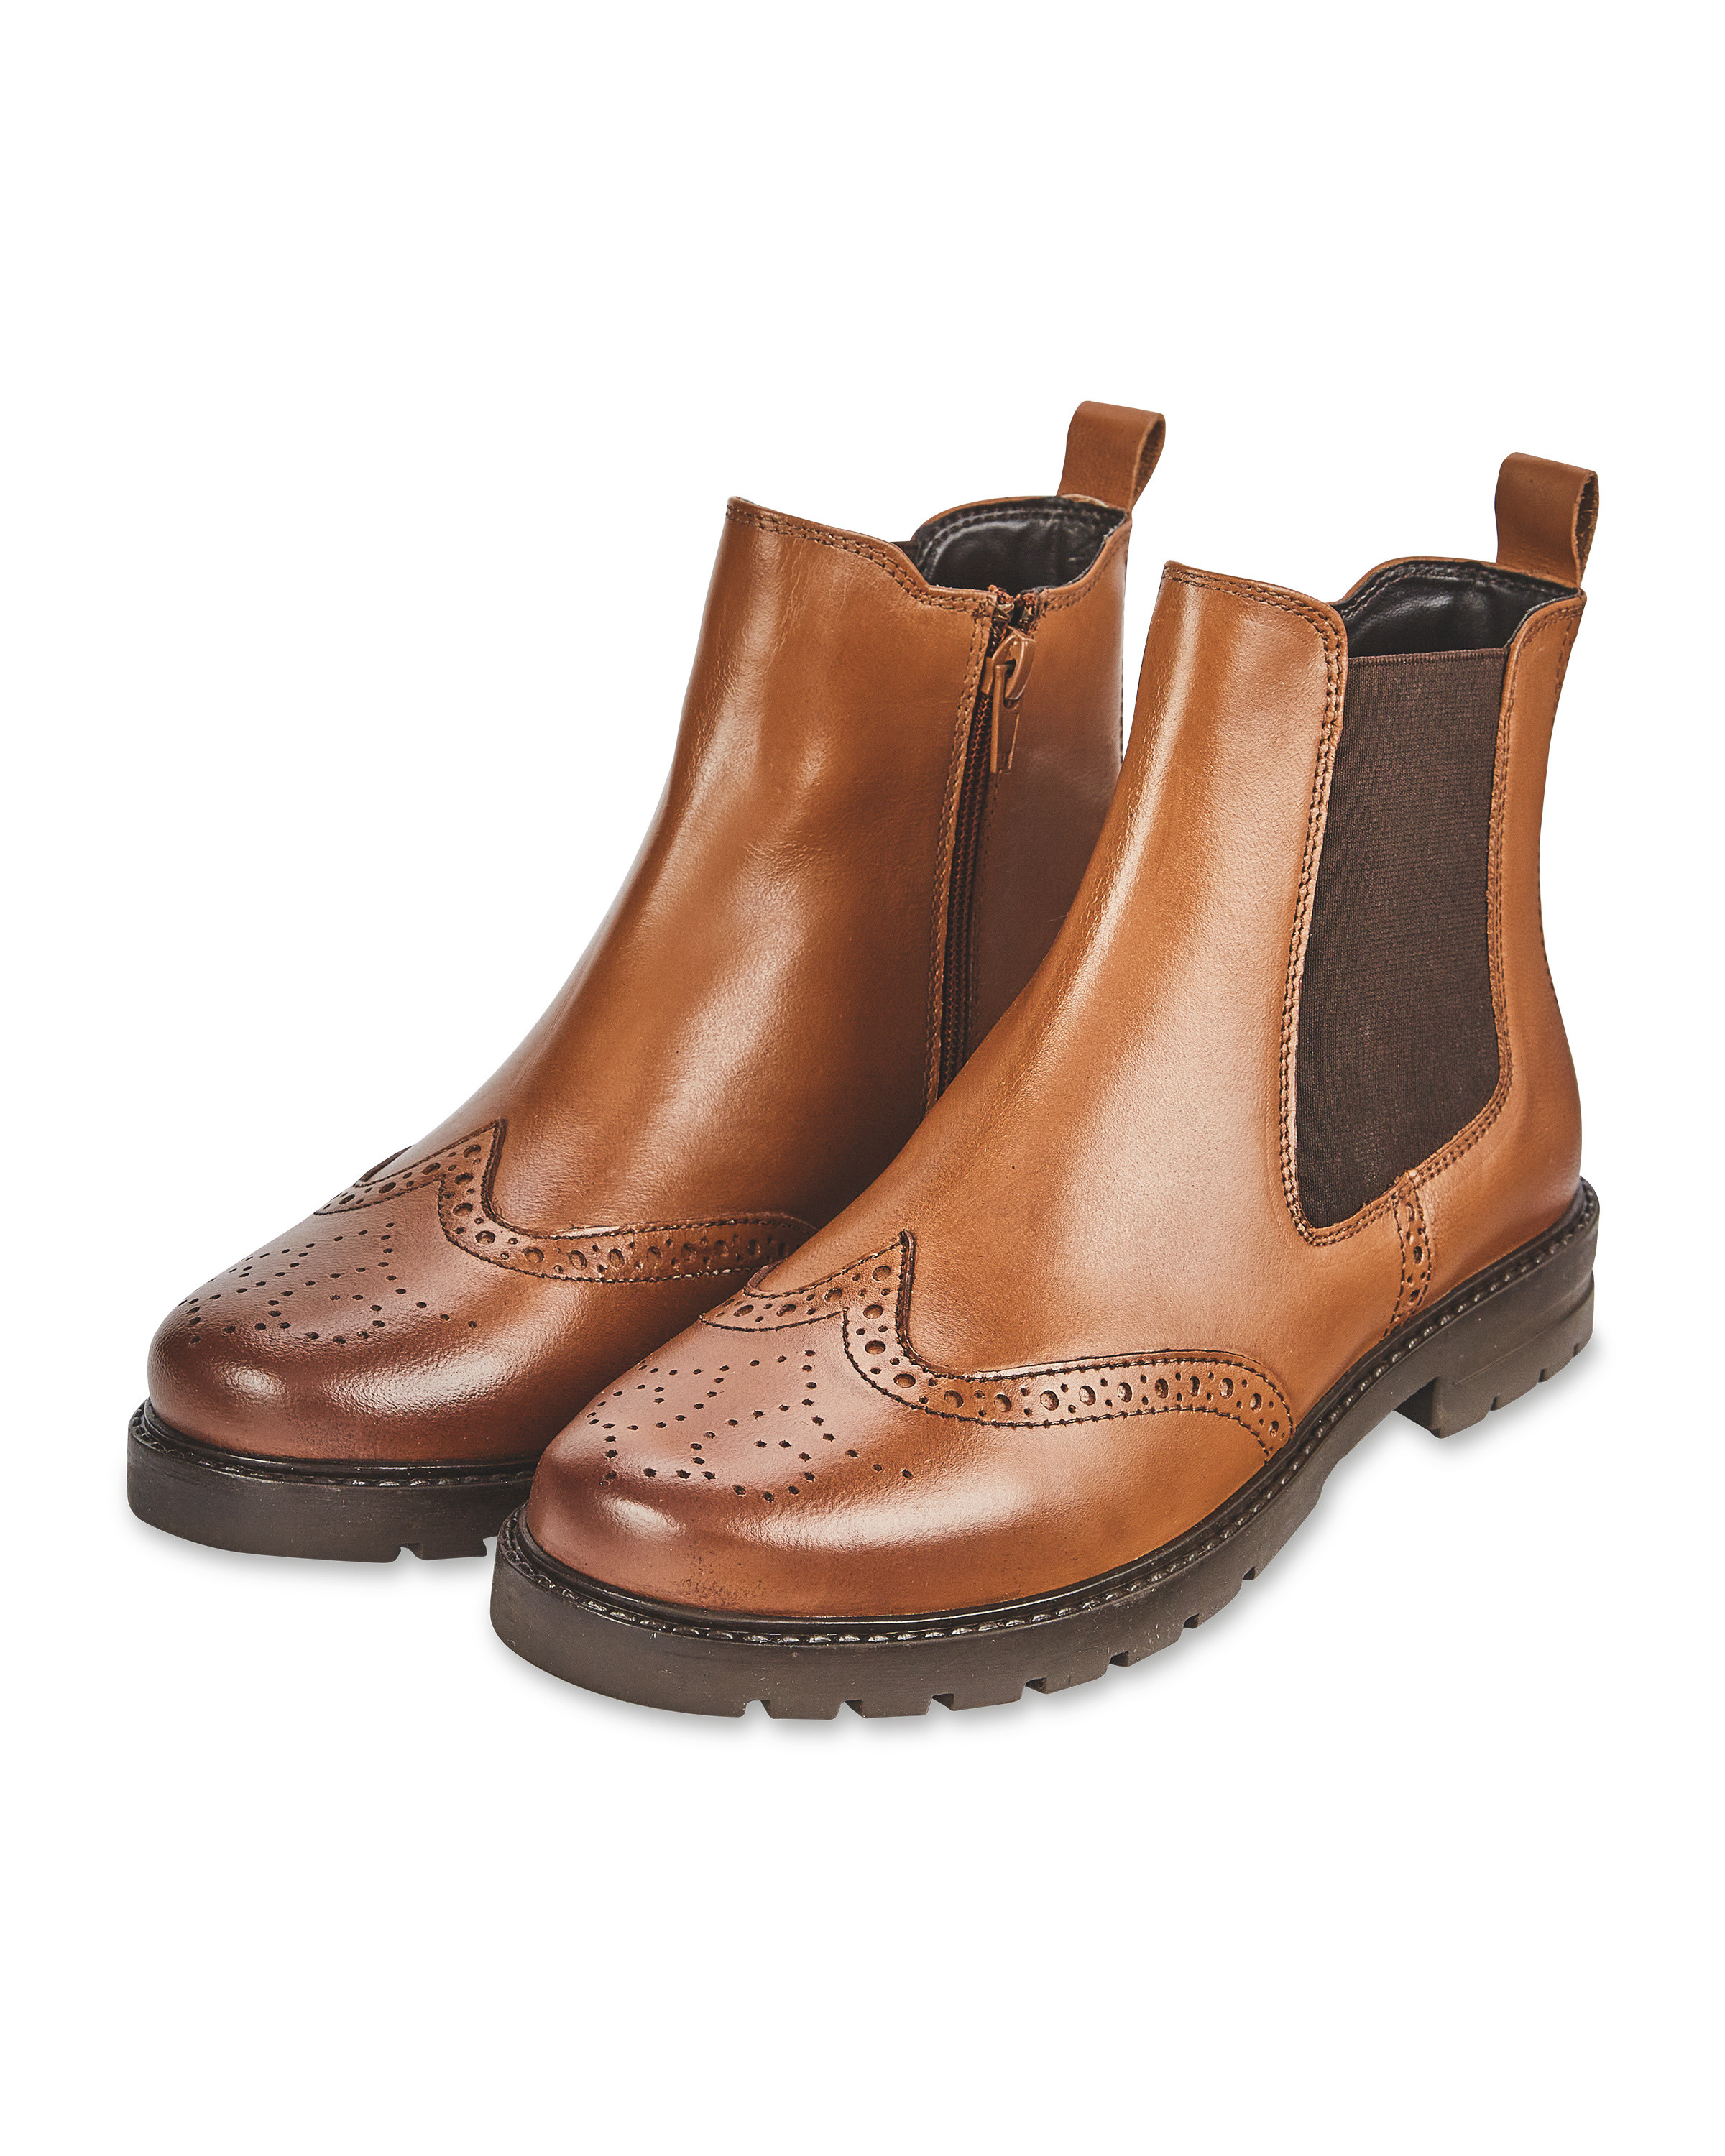 Ladies' Brown Leather Chelsea Boots